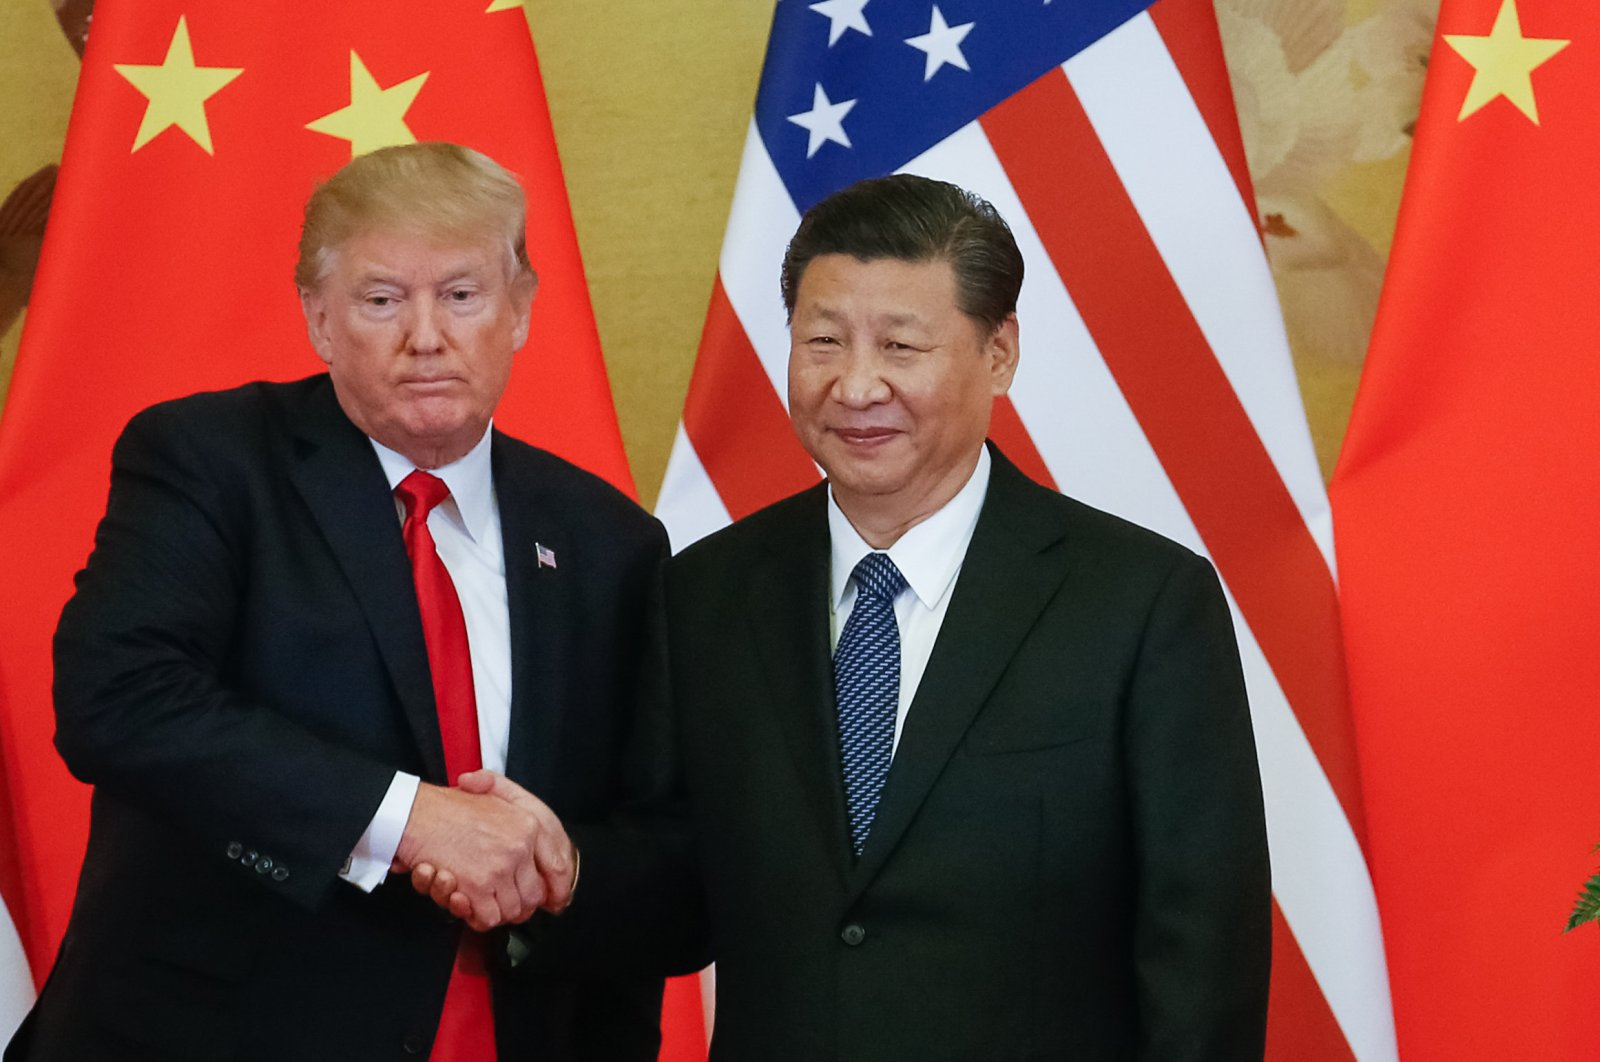 U.S. President Donald Trump (L) and Chinese President Xi Jinping (R) shake hands during a press conference at the Great Hall of the People (GHOP) in Beijing, China, Nov. 09, 2017. (EPA-EFE Photo)